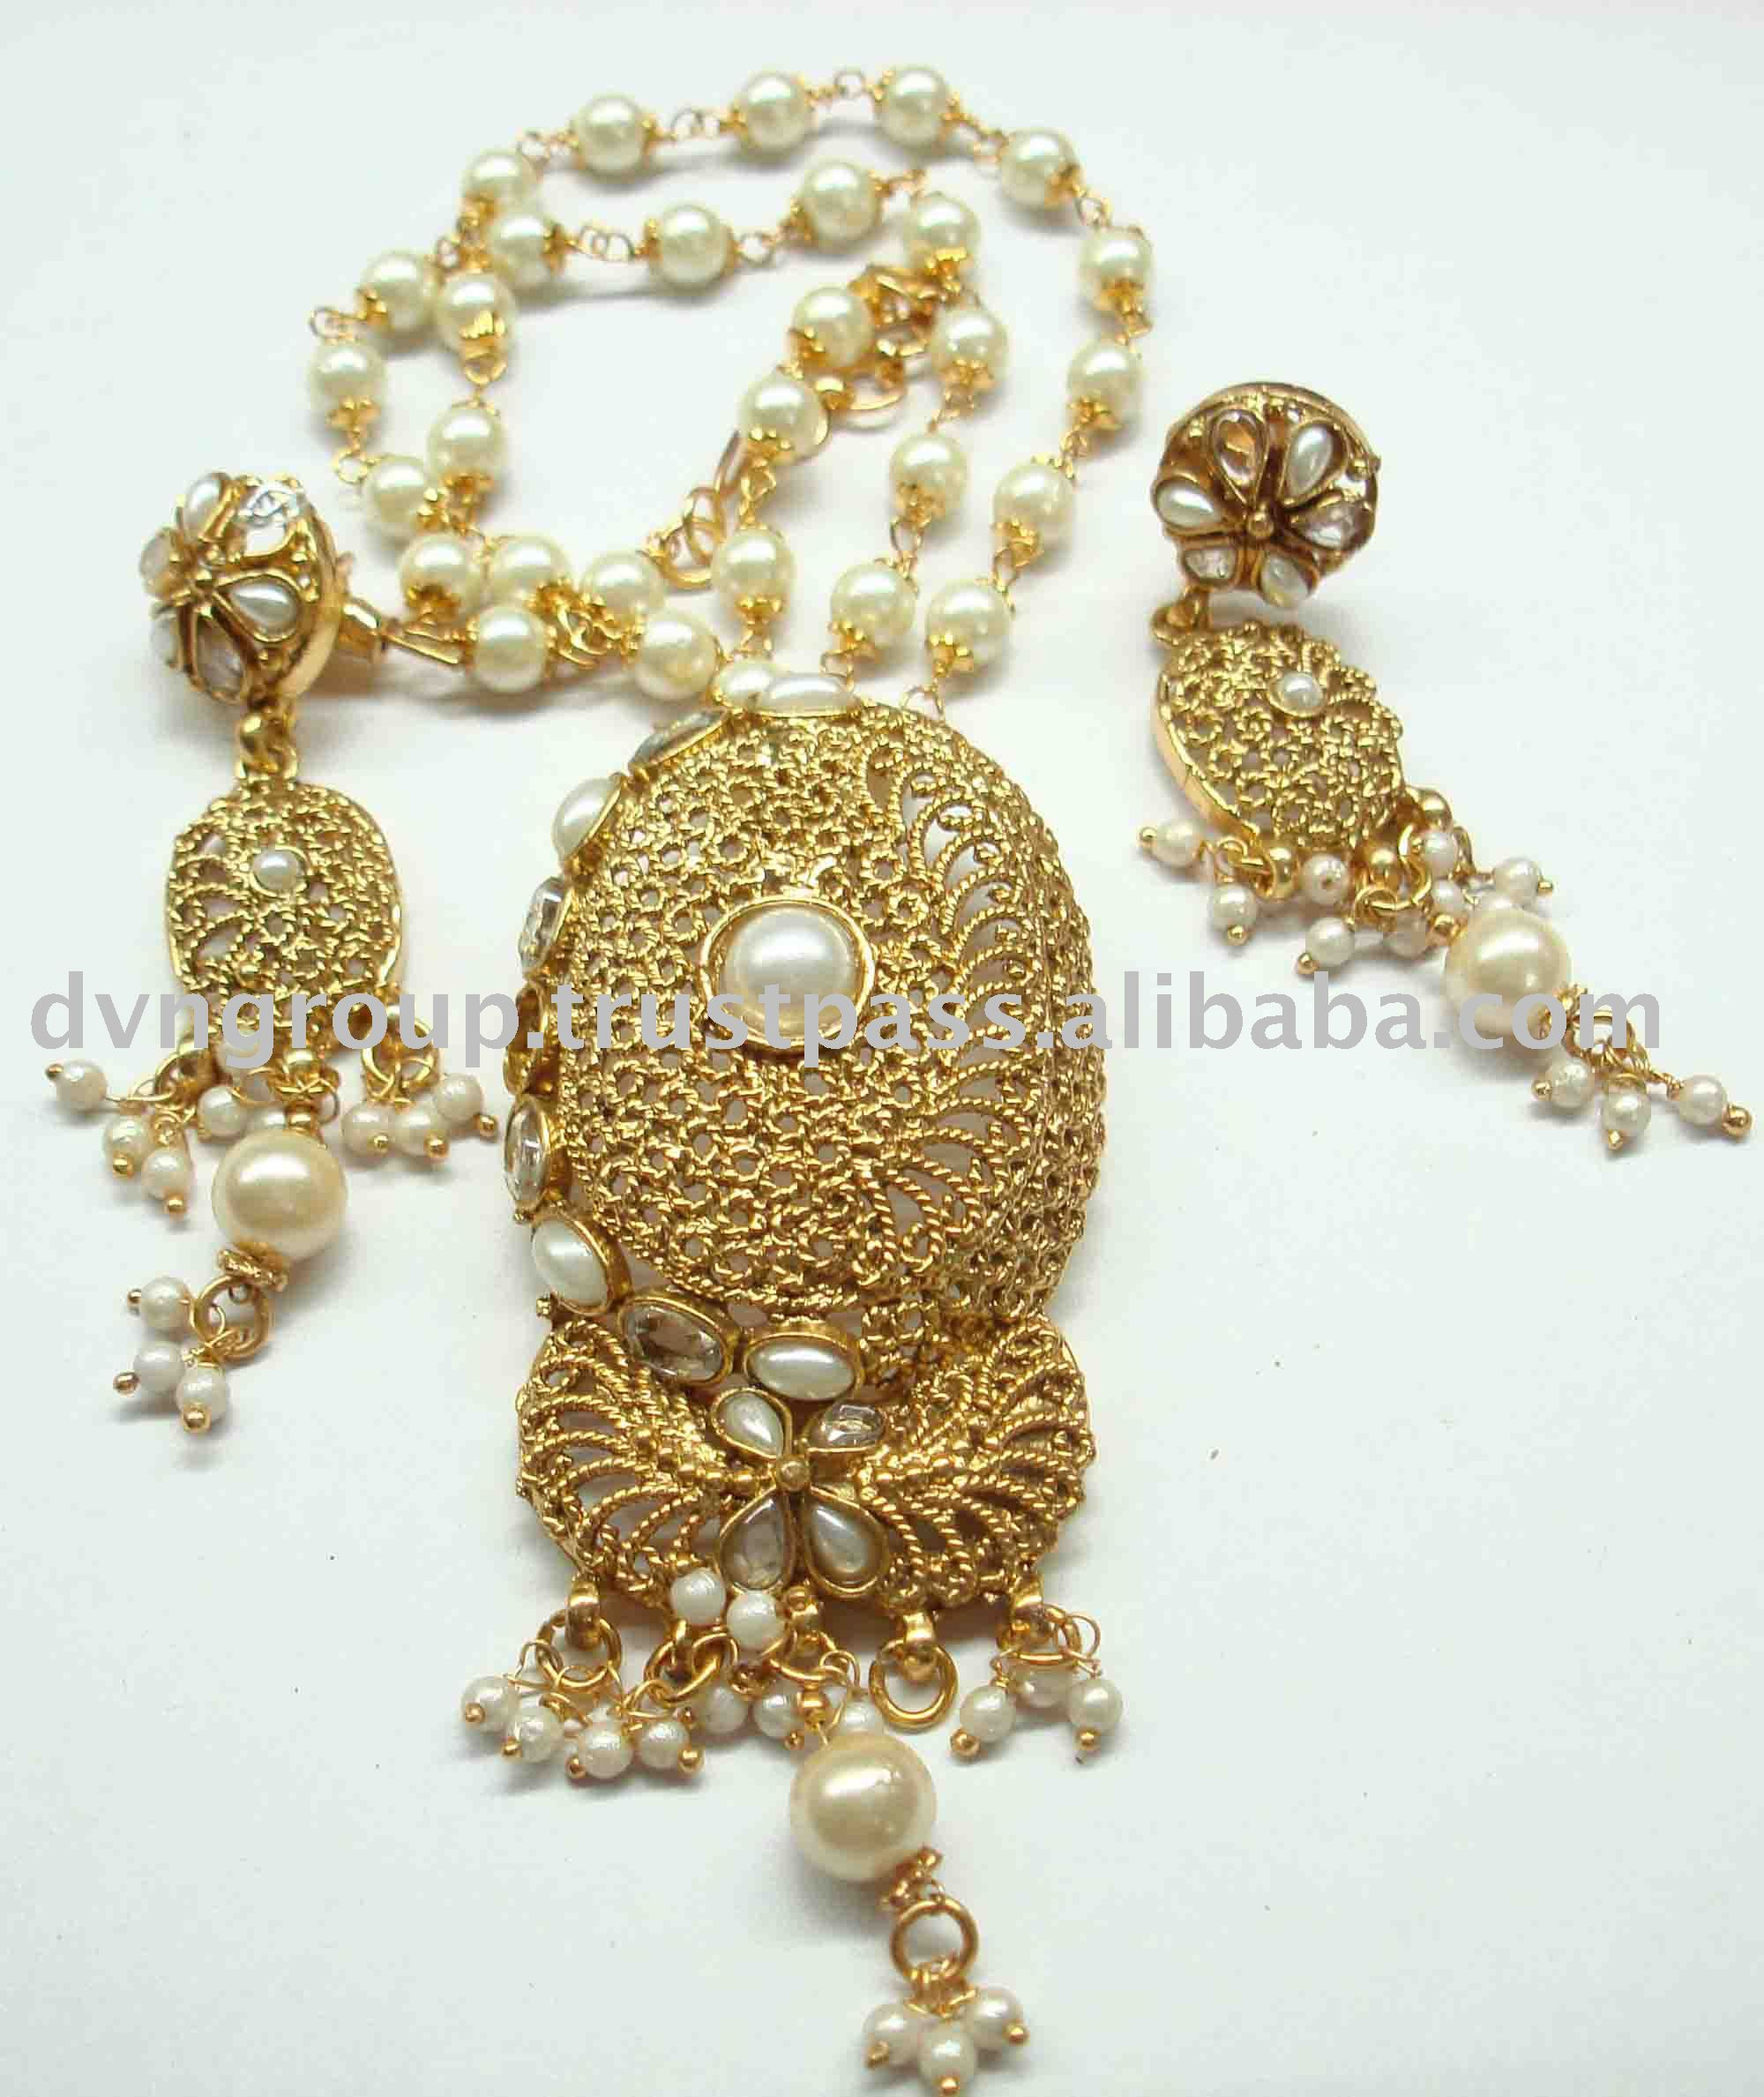 indian fashion jewelry - buy antique indian jewelry,fashion necklace,alloy  necklace product on alibaba.com lriewzz